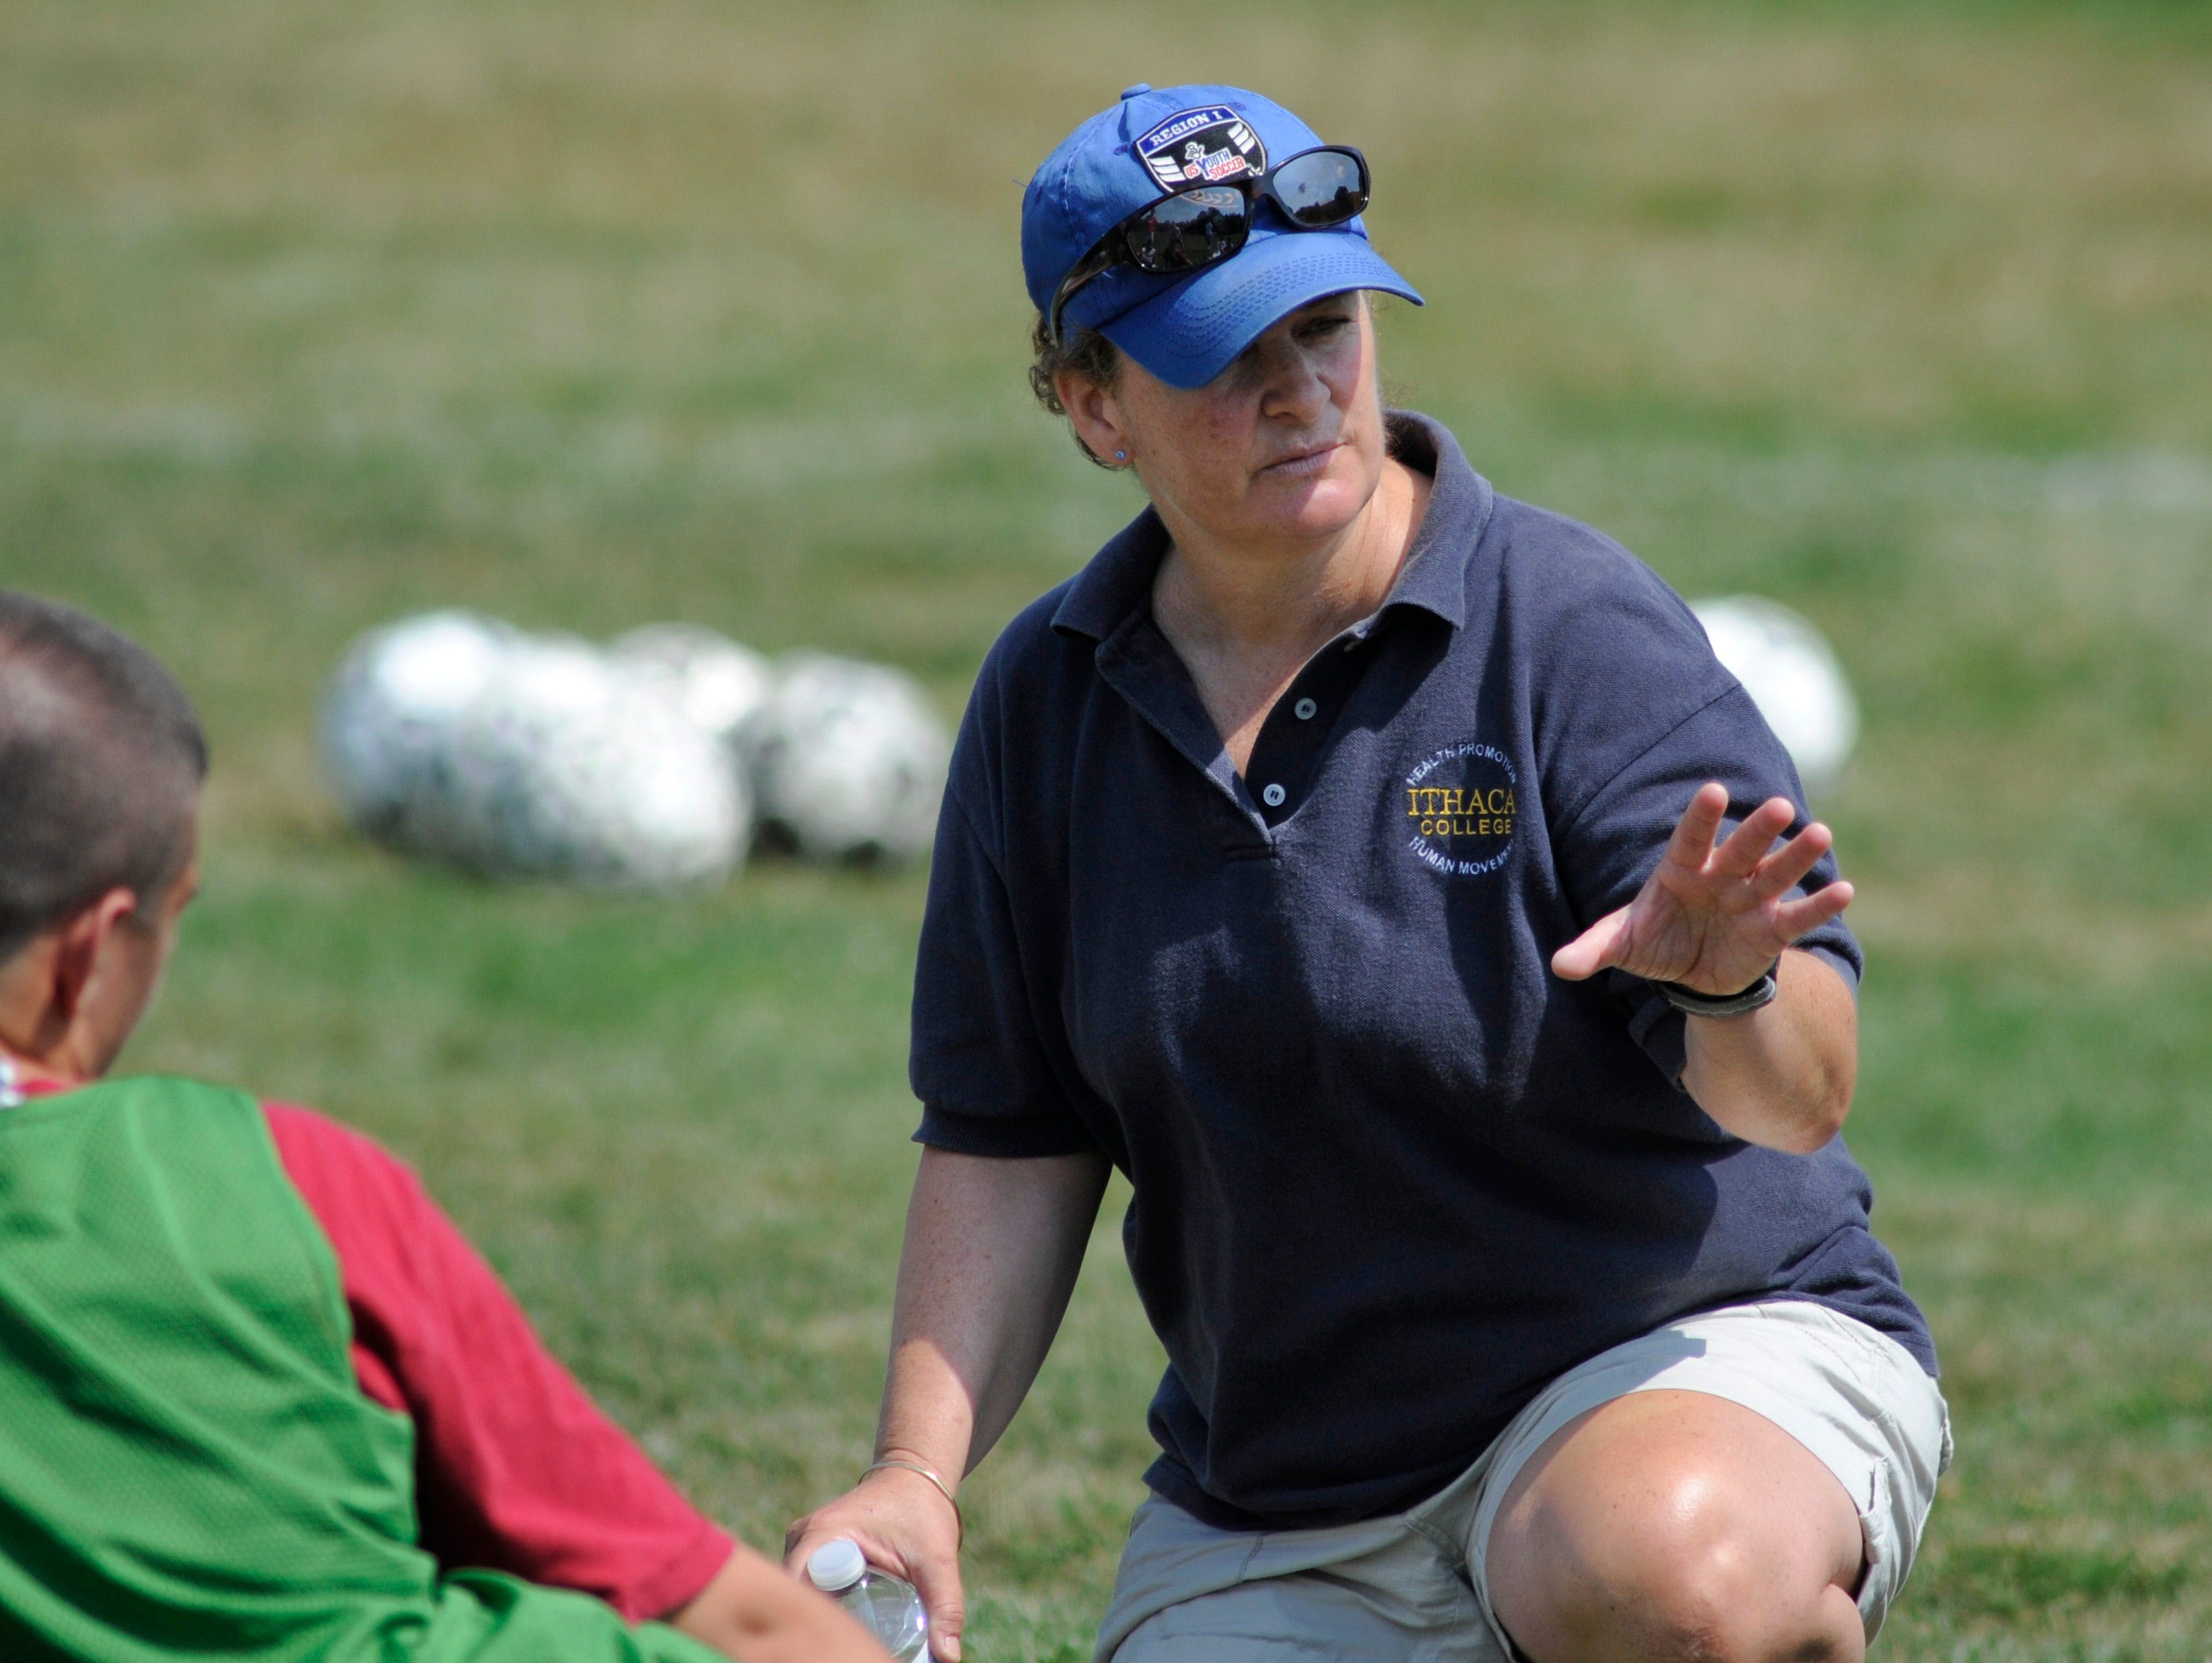 Highland High School first-year boys' varsity soccer coach Terri Cilento instructs during practice on Wednesday in Lloyd.